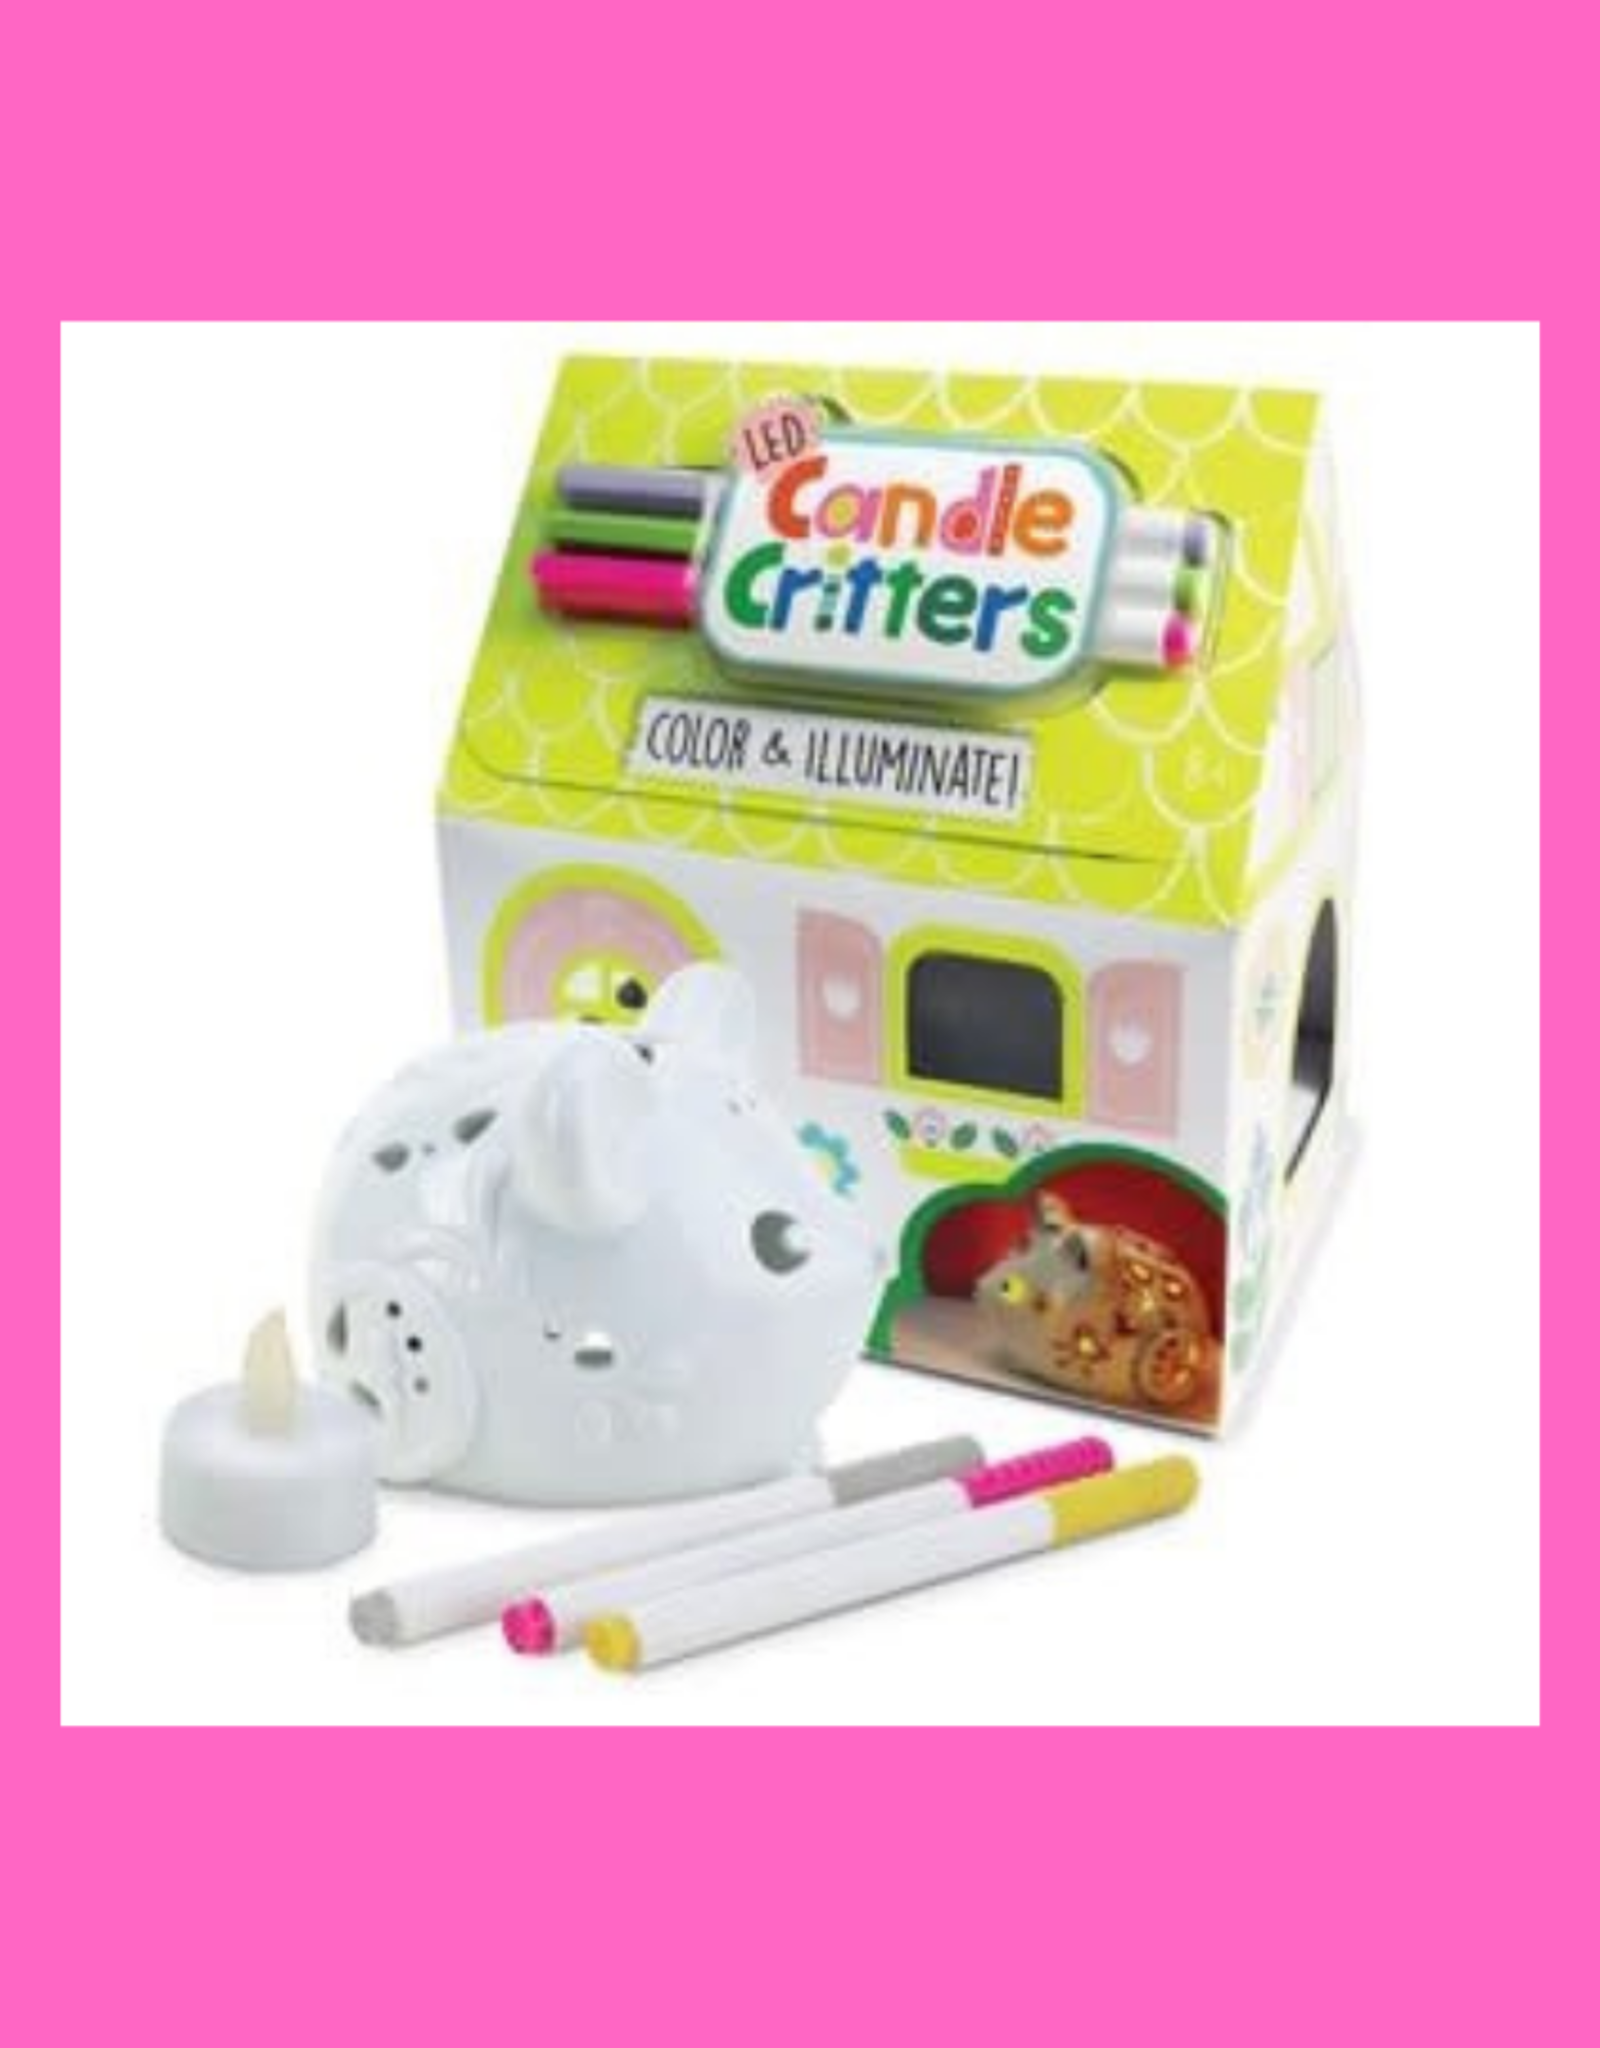 BRIGHT STRIPES CANDLE CRITTERS LED MOUSE